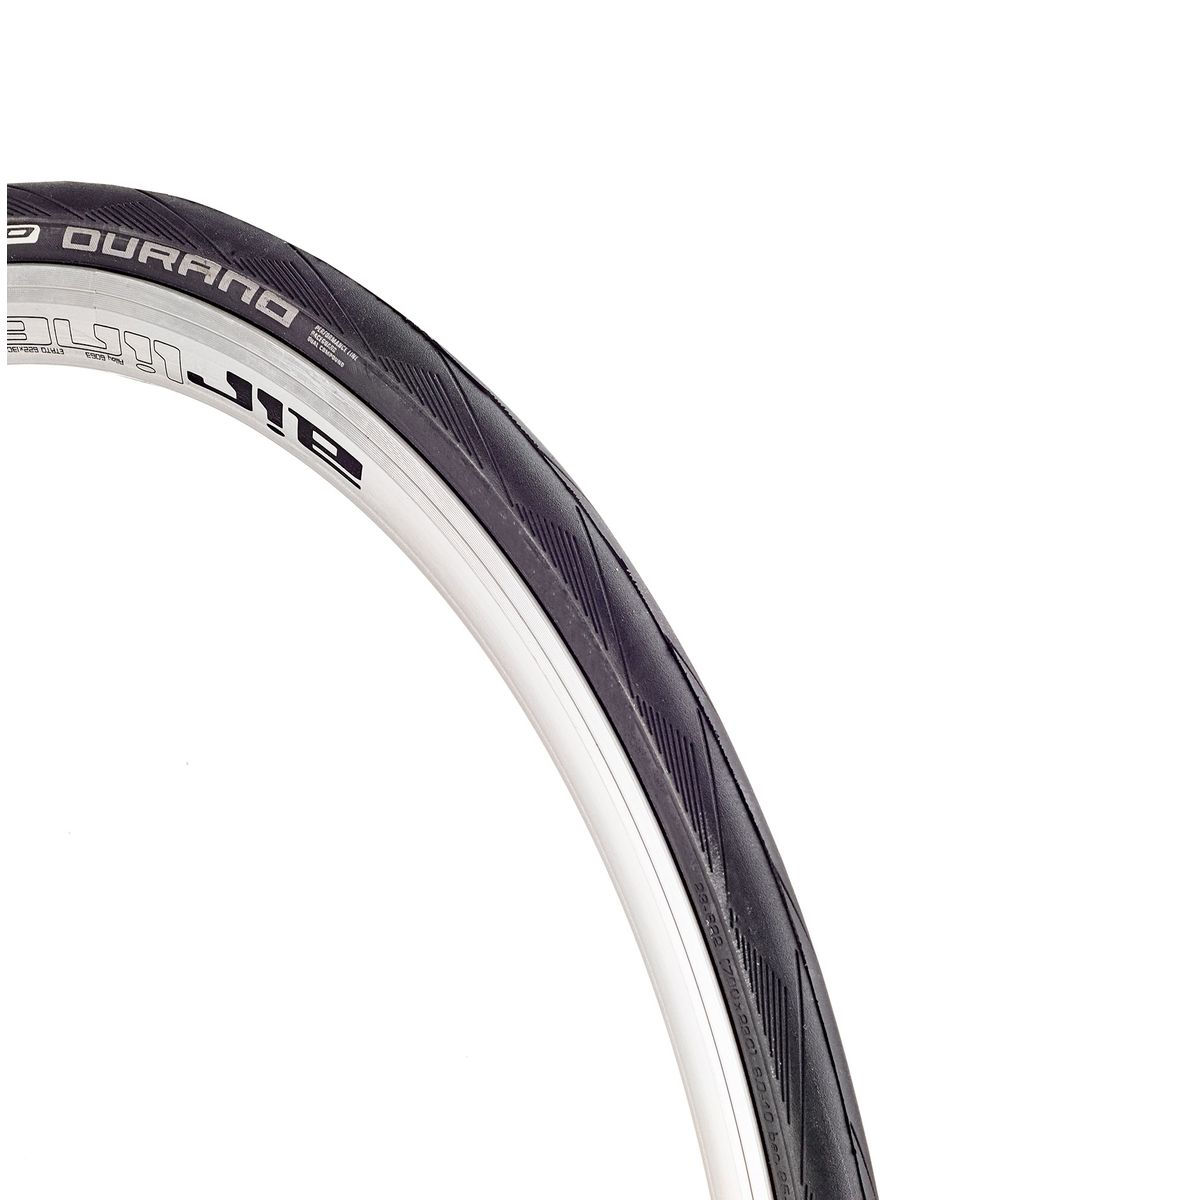 DURANO road tyre